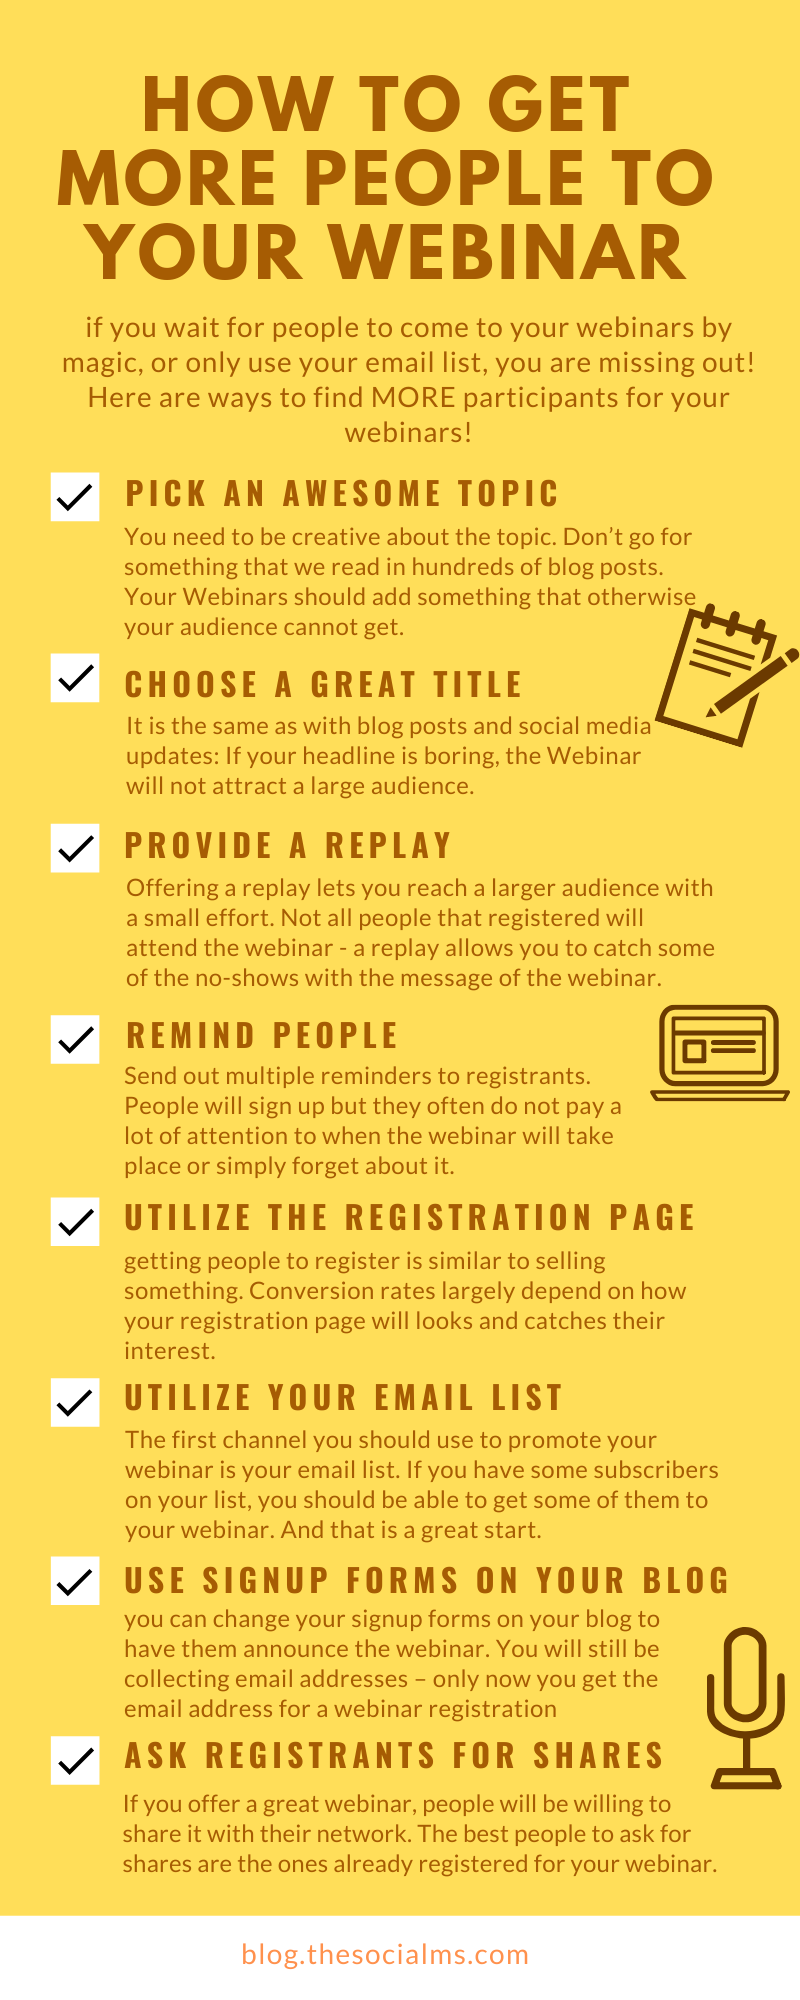 if you sit back and wait for people to come to your webinars by magic, or only fill up your webinars from your email list, you are missing out on one of the most important factors: Getting new people into your tribe.  Here are 14 ways to find participants for your webinars and make sure you get the maximum out of your efforts. #webinar #salesfunnel #leadmagnet #onlinebusiness #makemoneyblogging #bloggingformoney #makemoneyonline